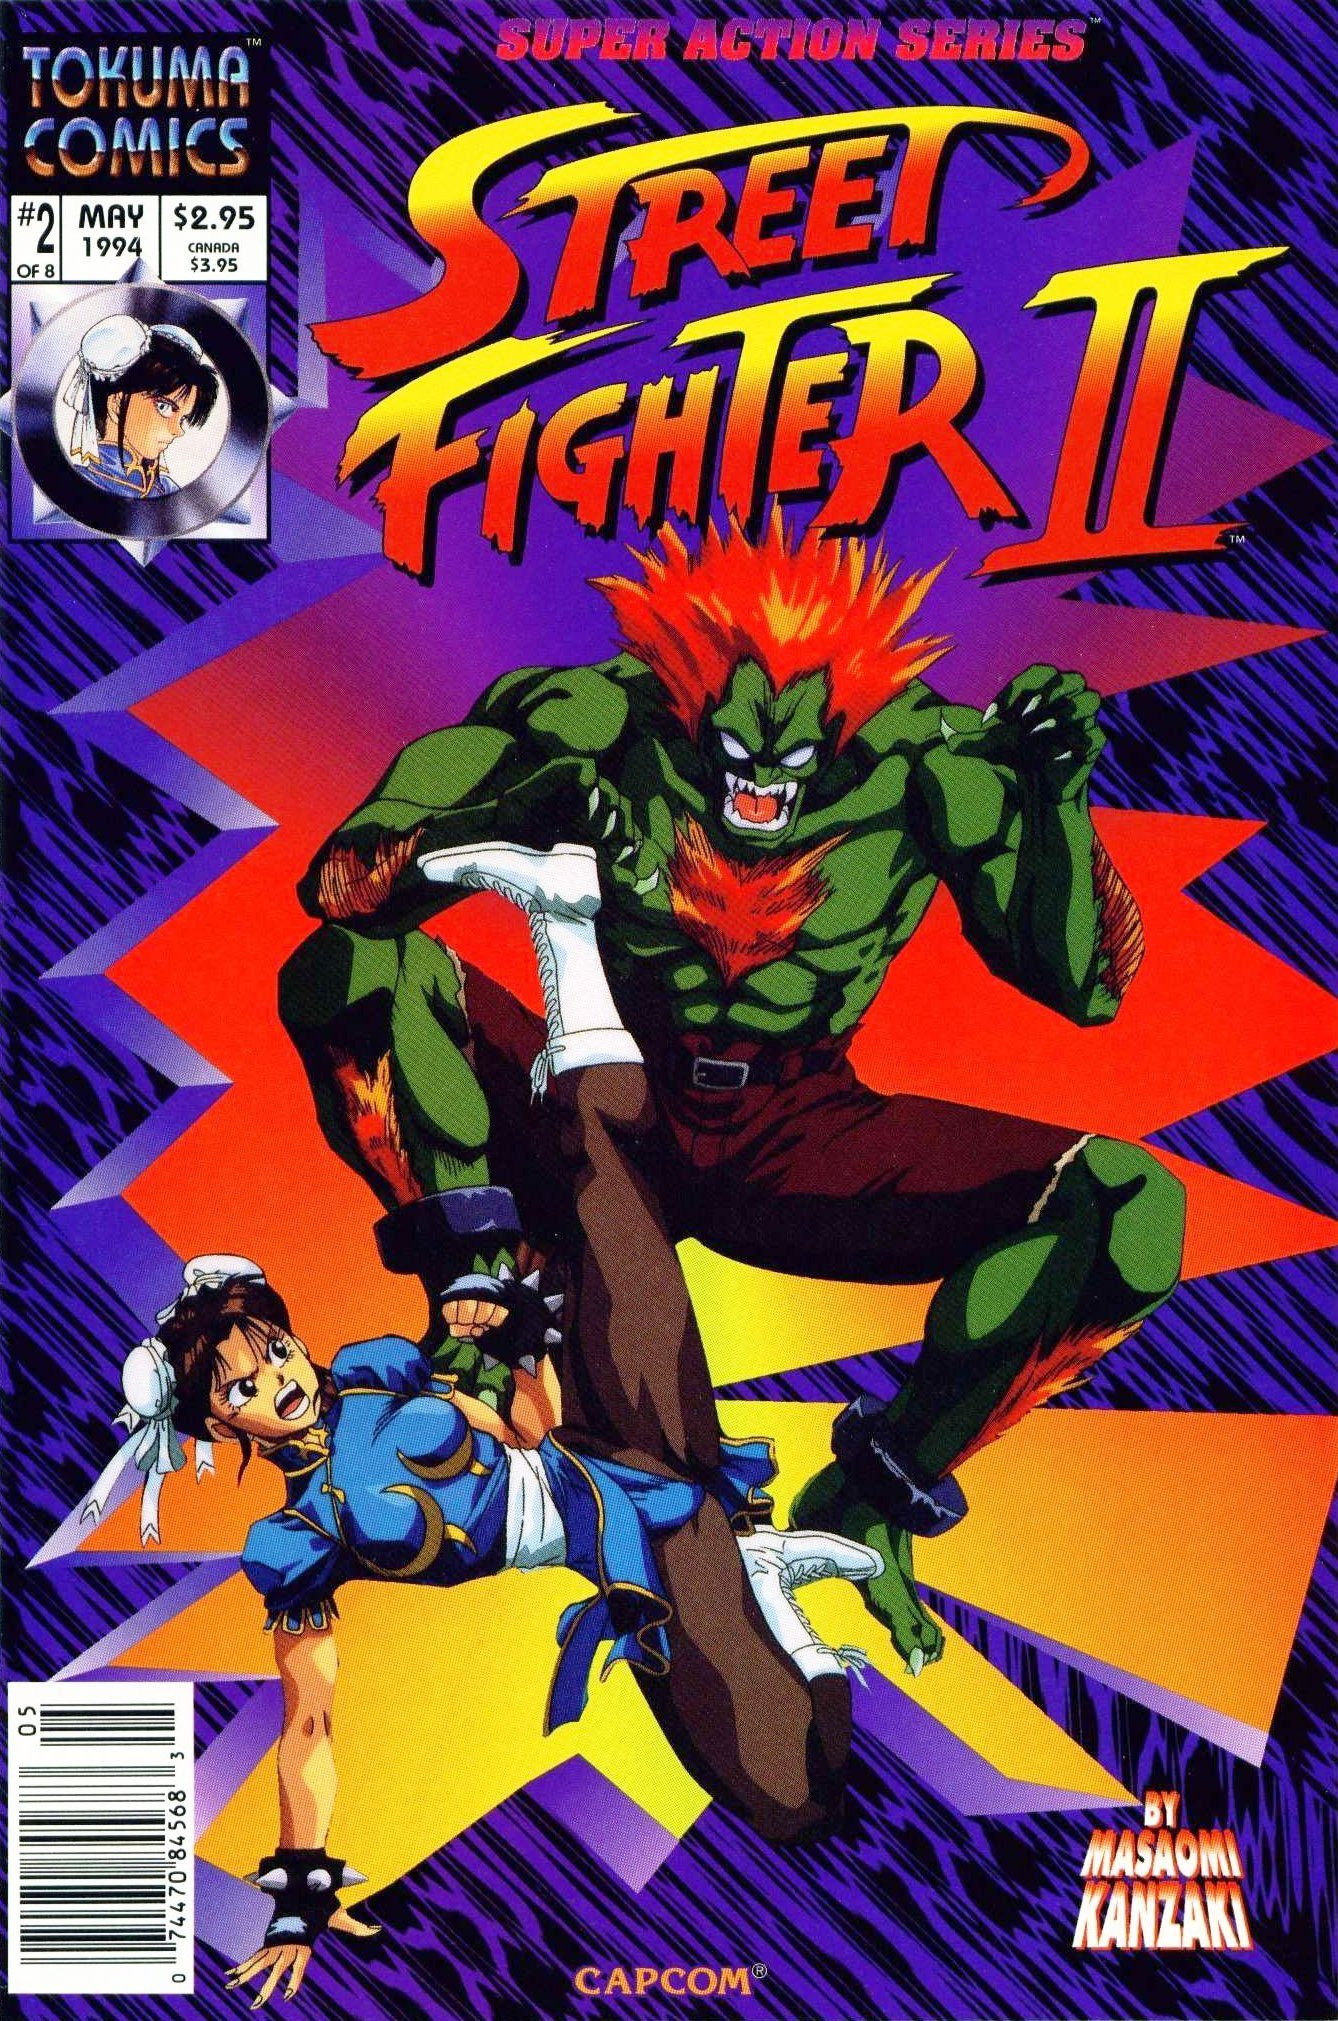 Street Fighter II 02 (May 1994)